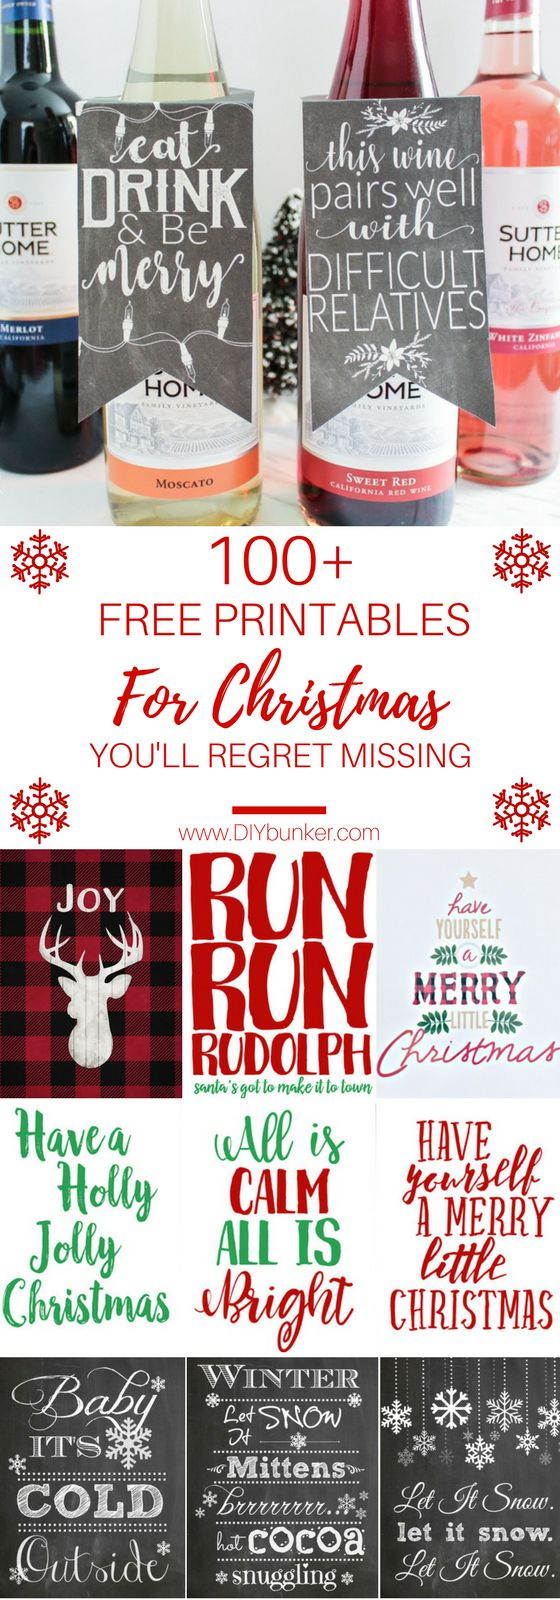 These 100+ Christmas Printables Are GORGEOUS! I love how there is everything from wall art to gift tags labels for wine!